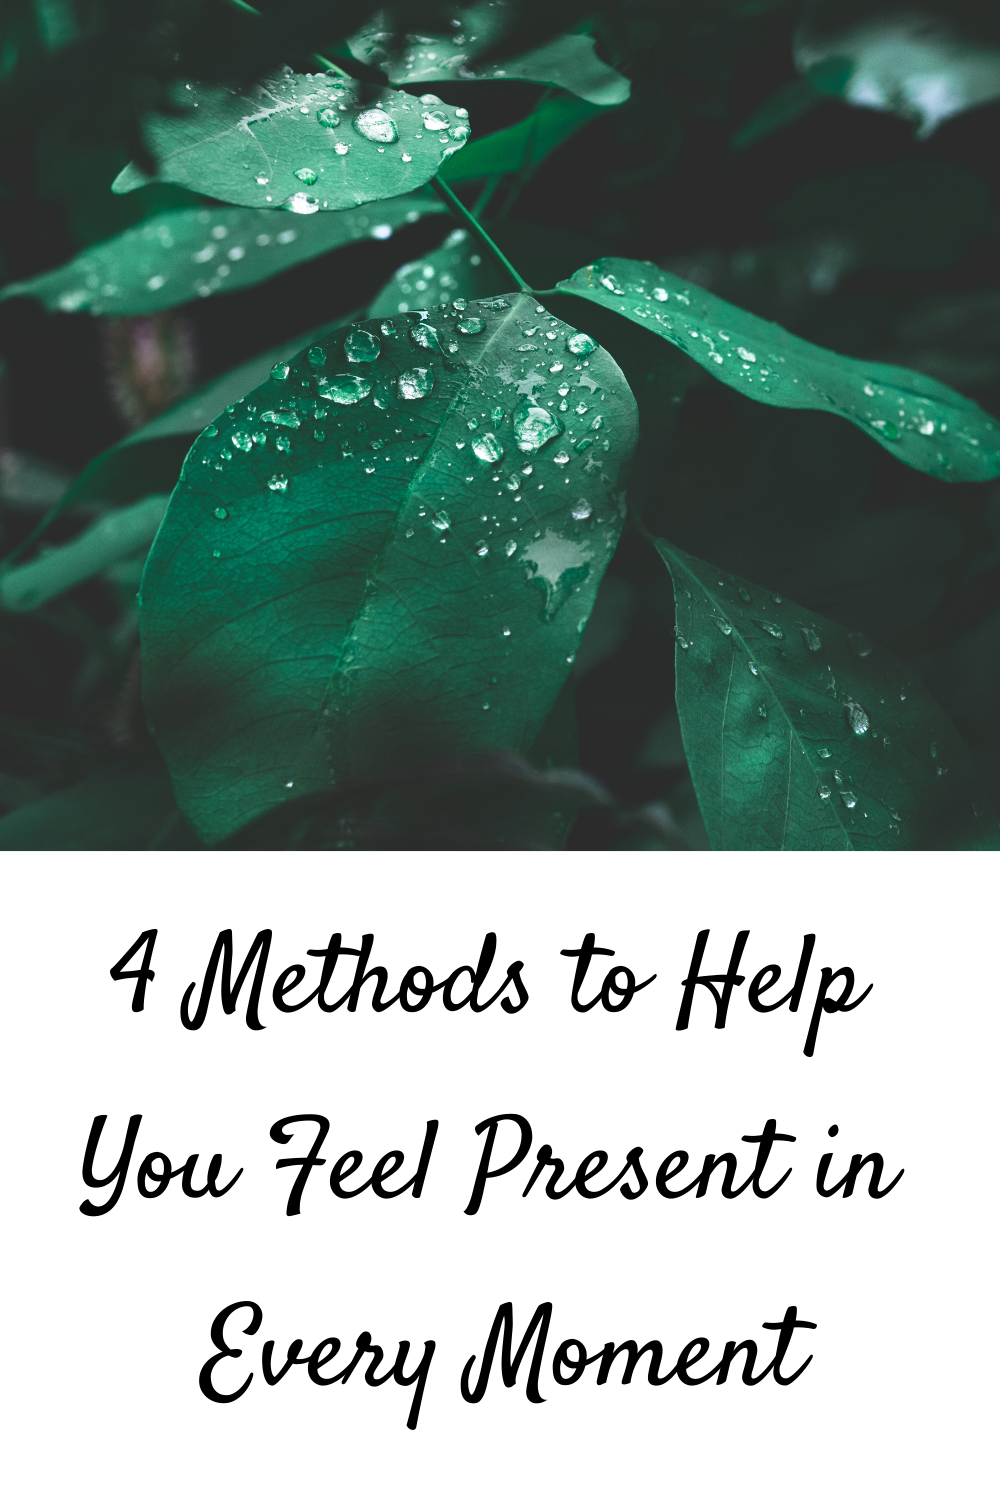 4 Methods to Help You Feel Present in Every Moment